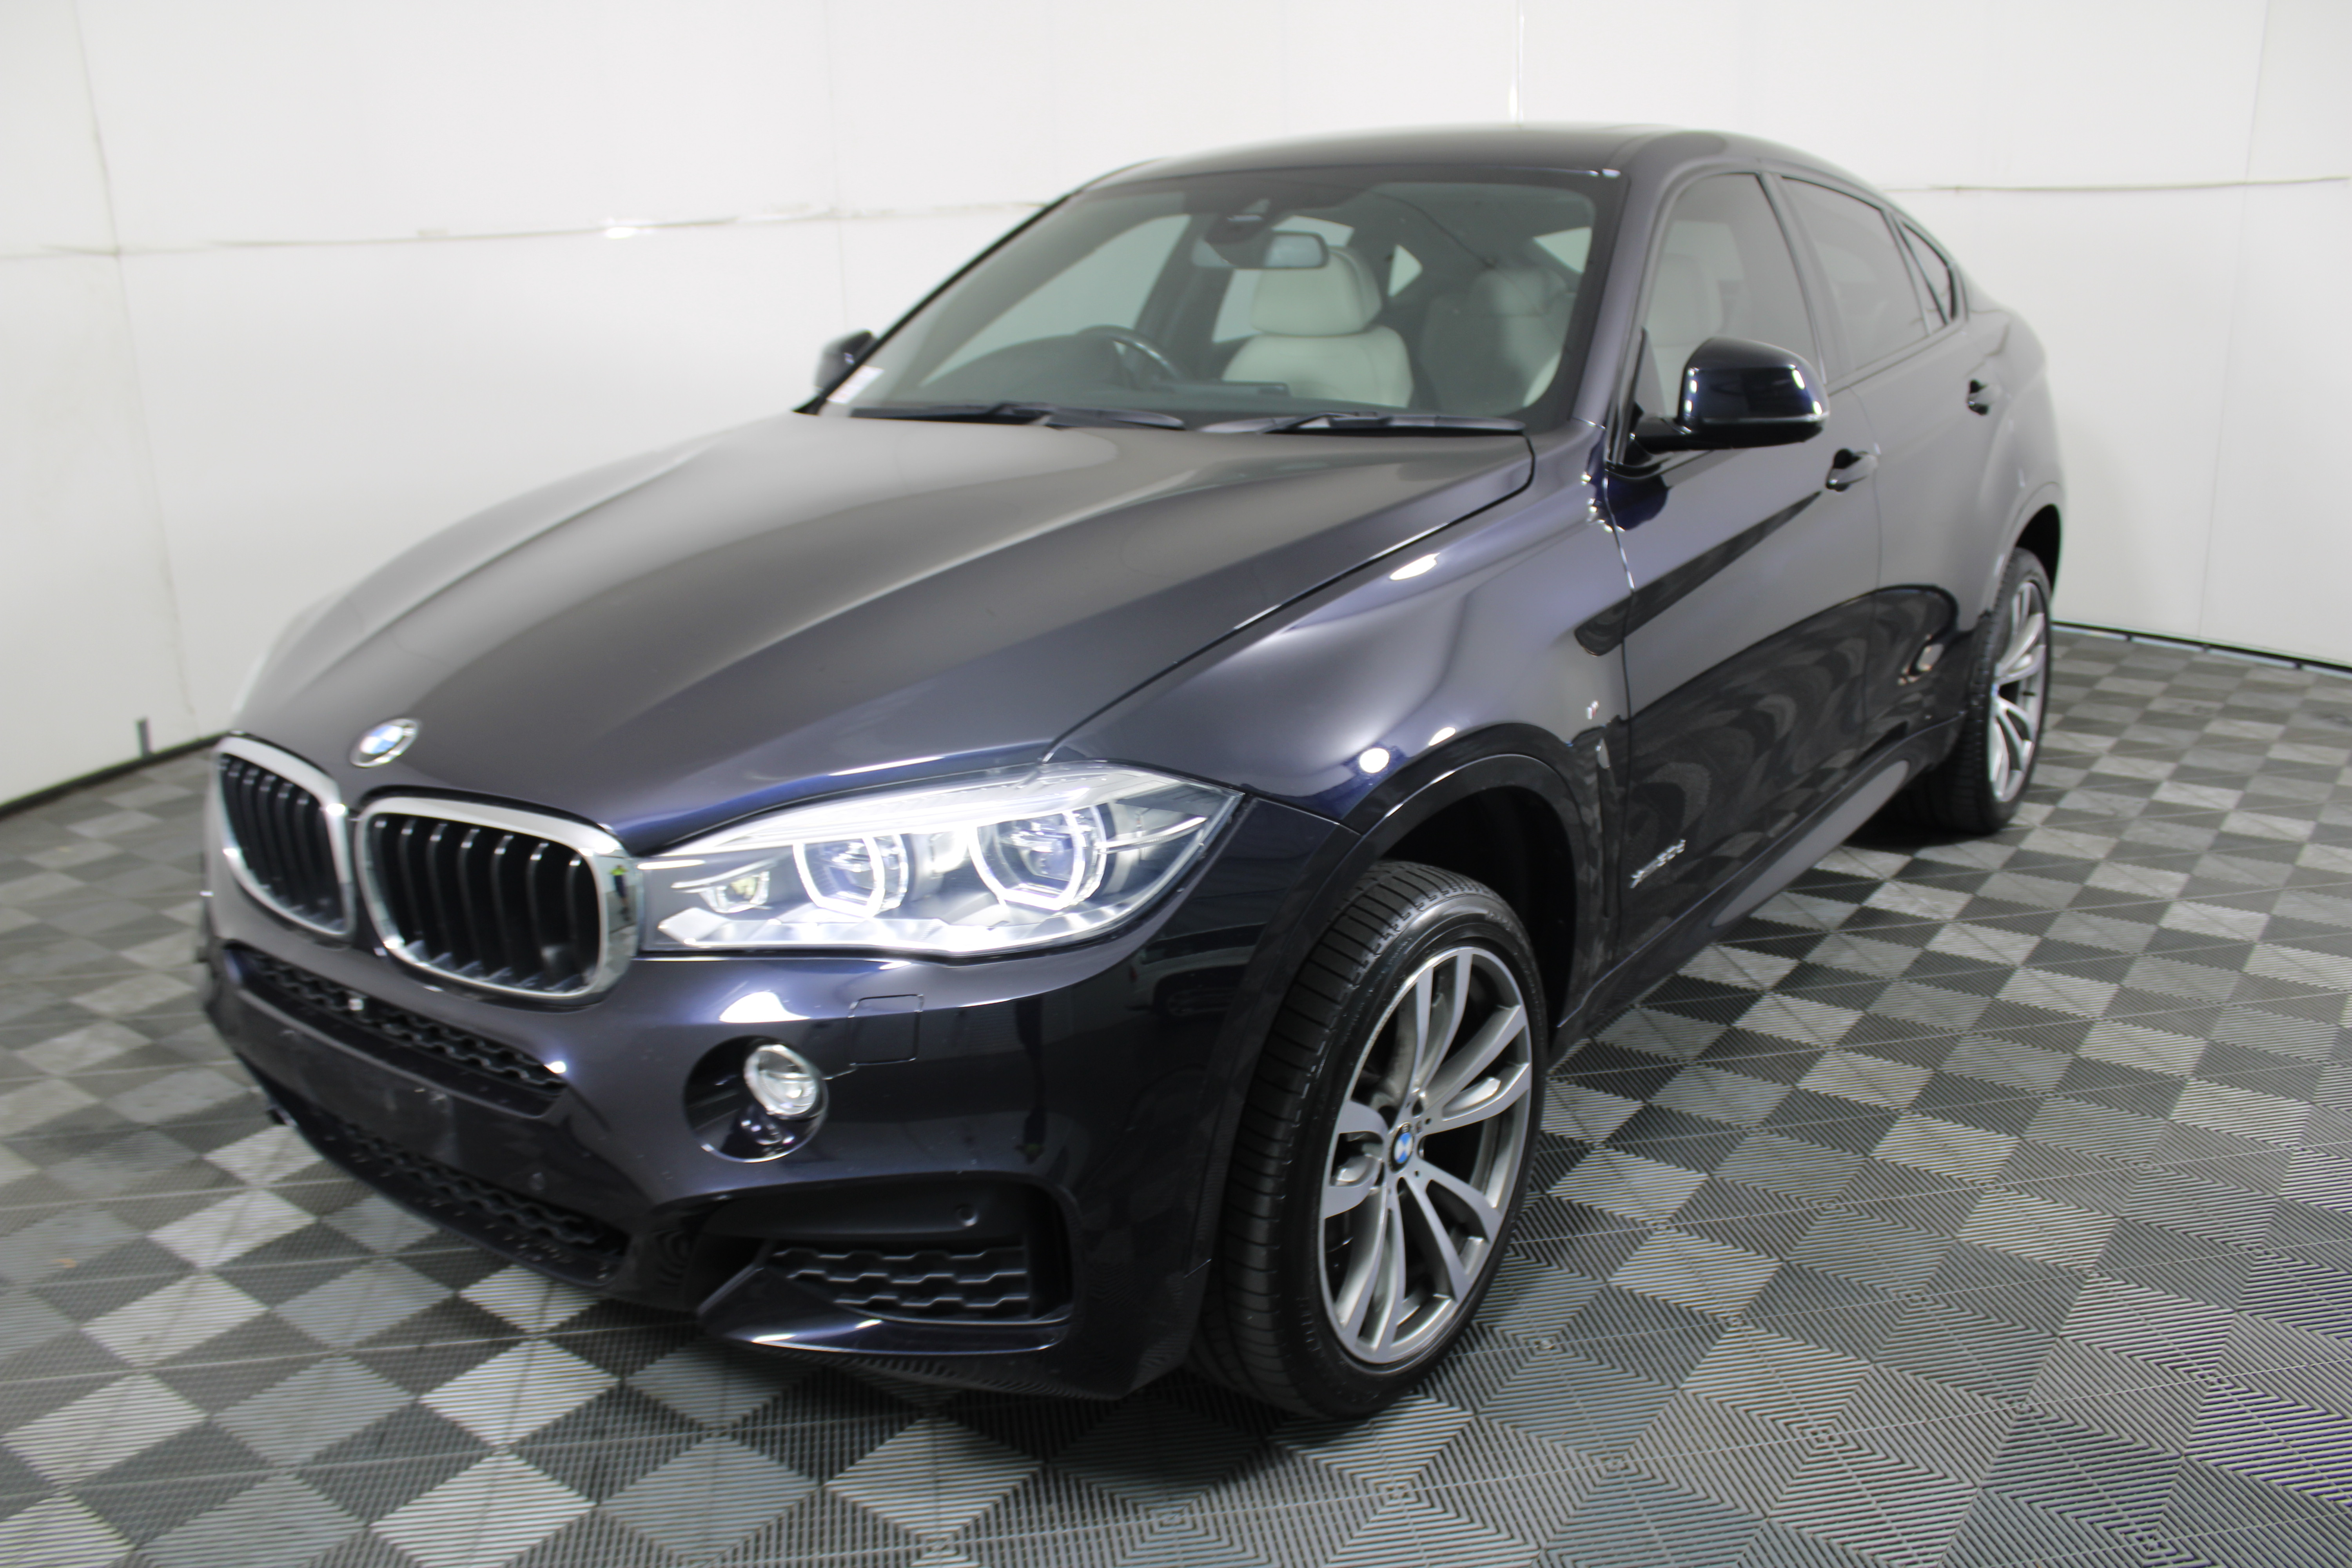 2015 BMW X6 xDrive 30d F16 Turbo Diesel Automatic - 8 Speed Coupe